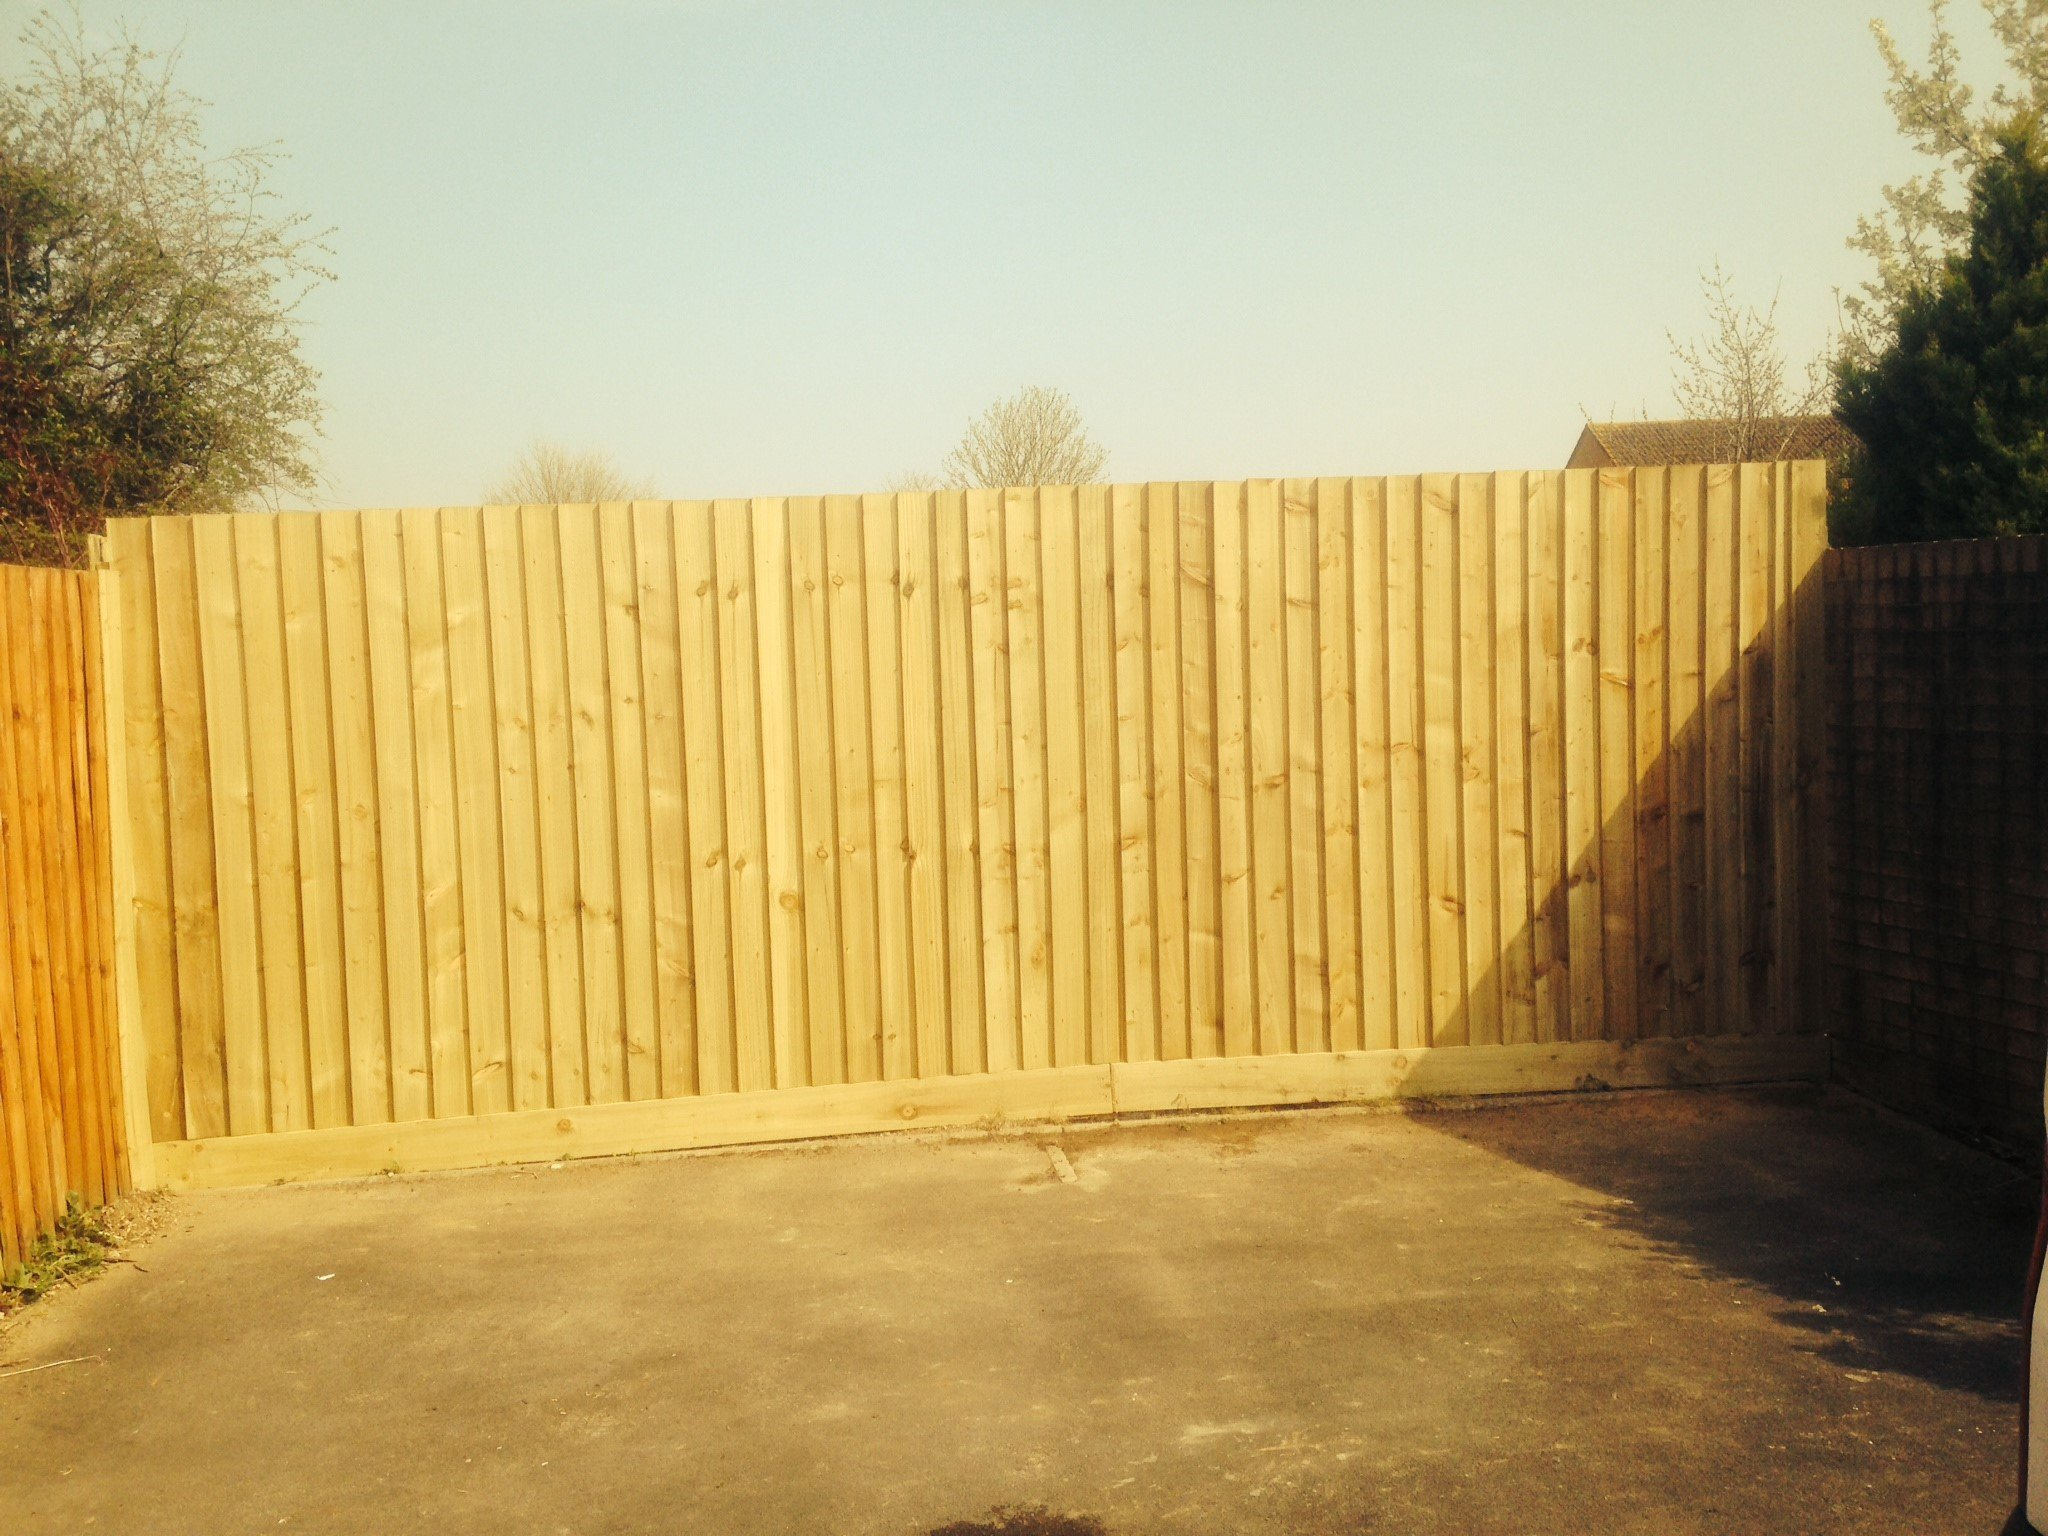 Fencing with wood